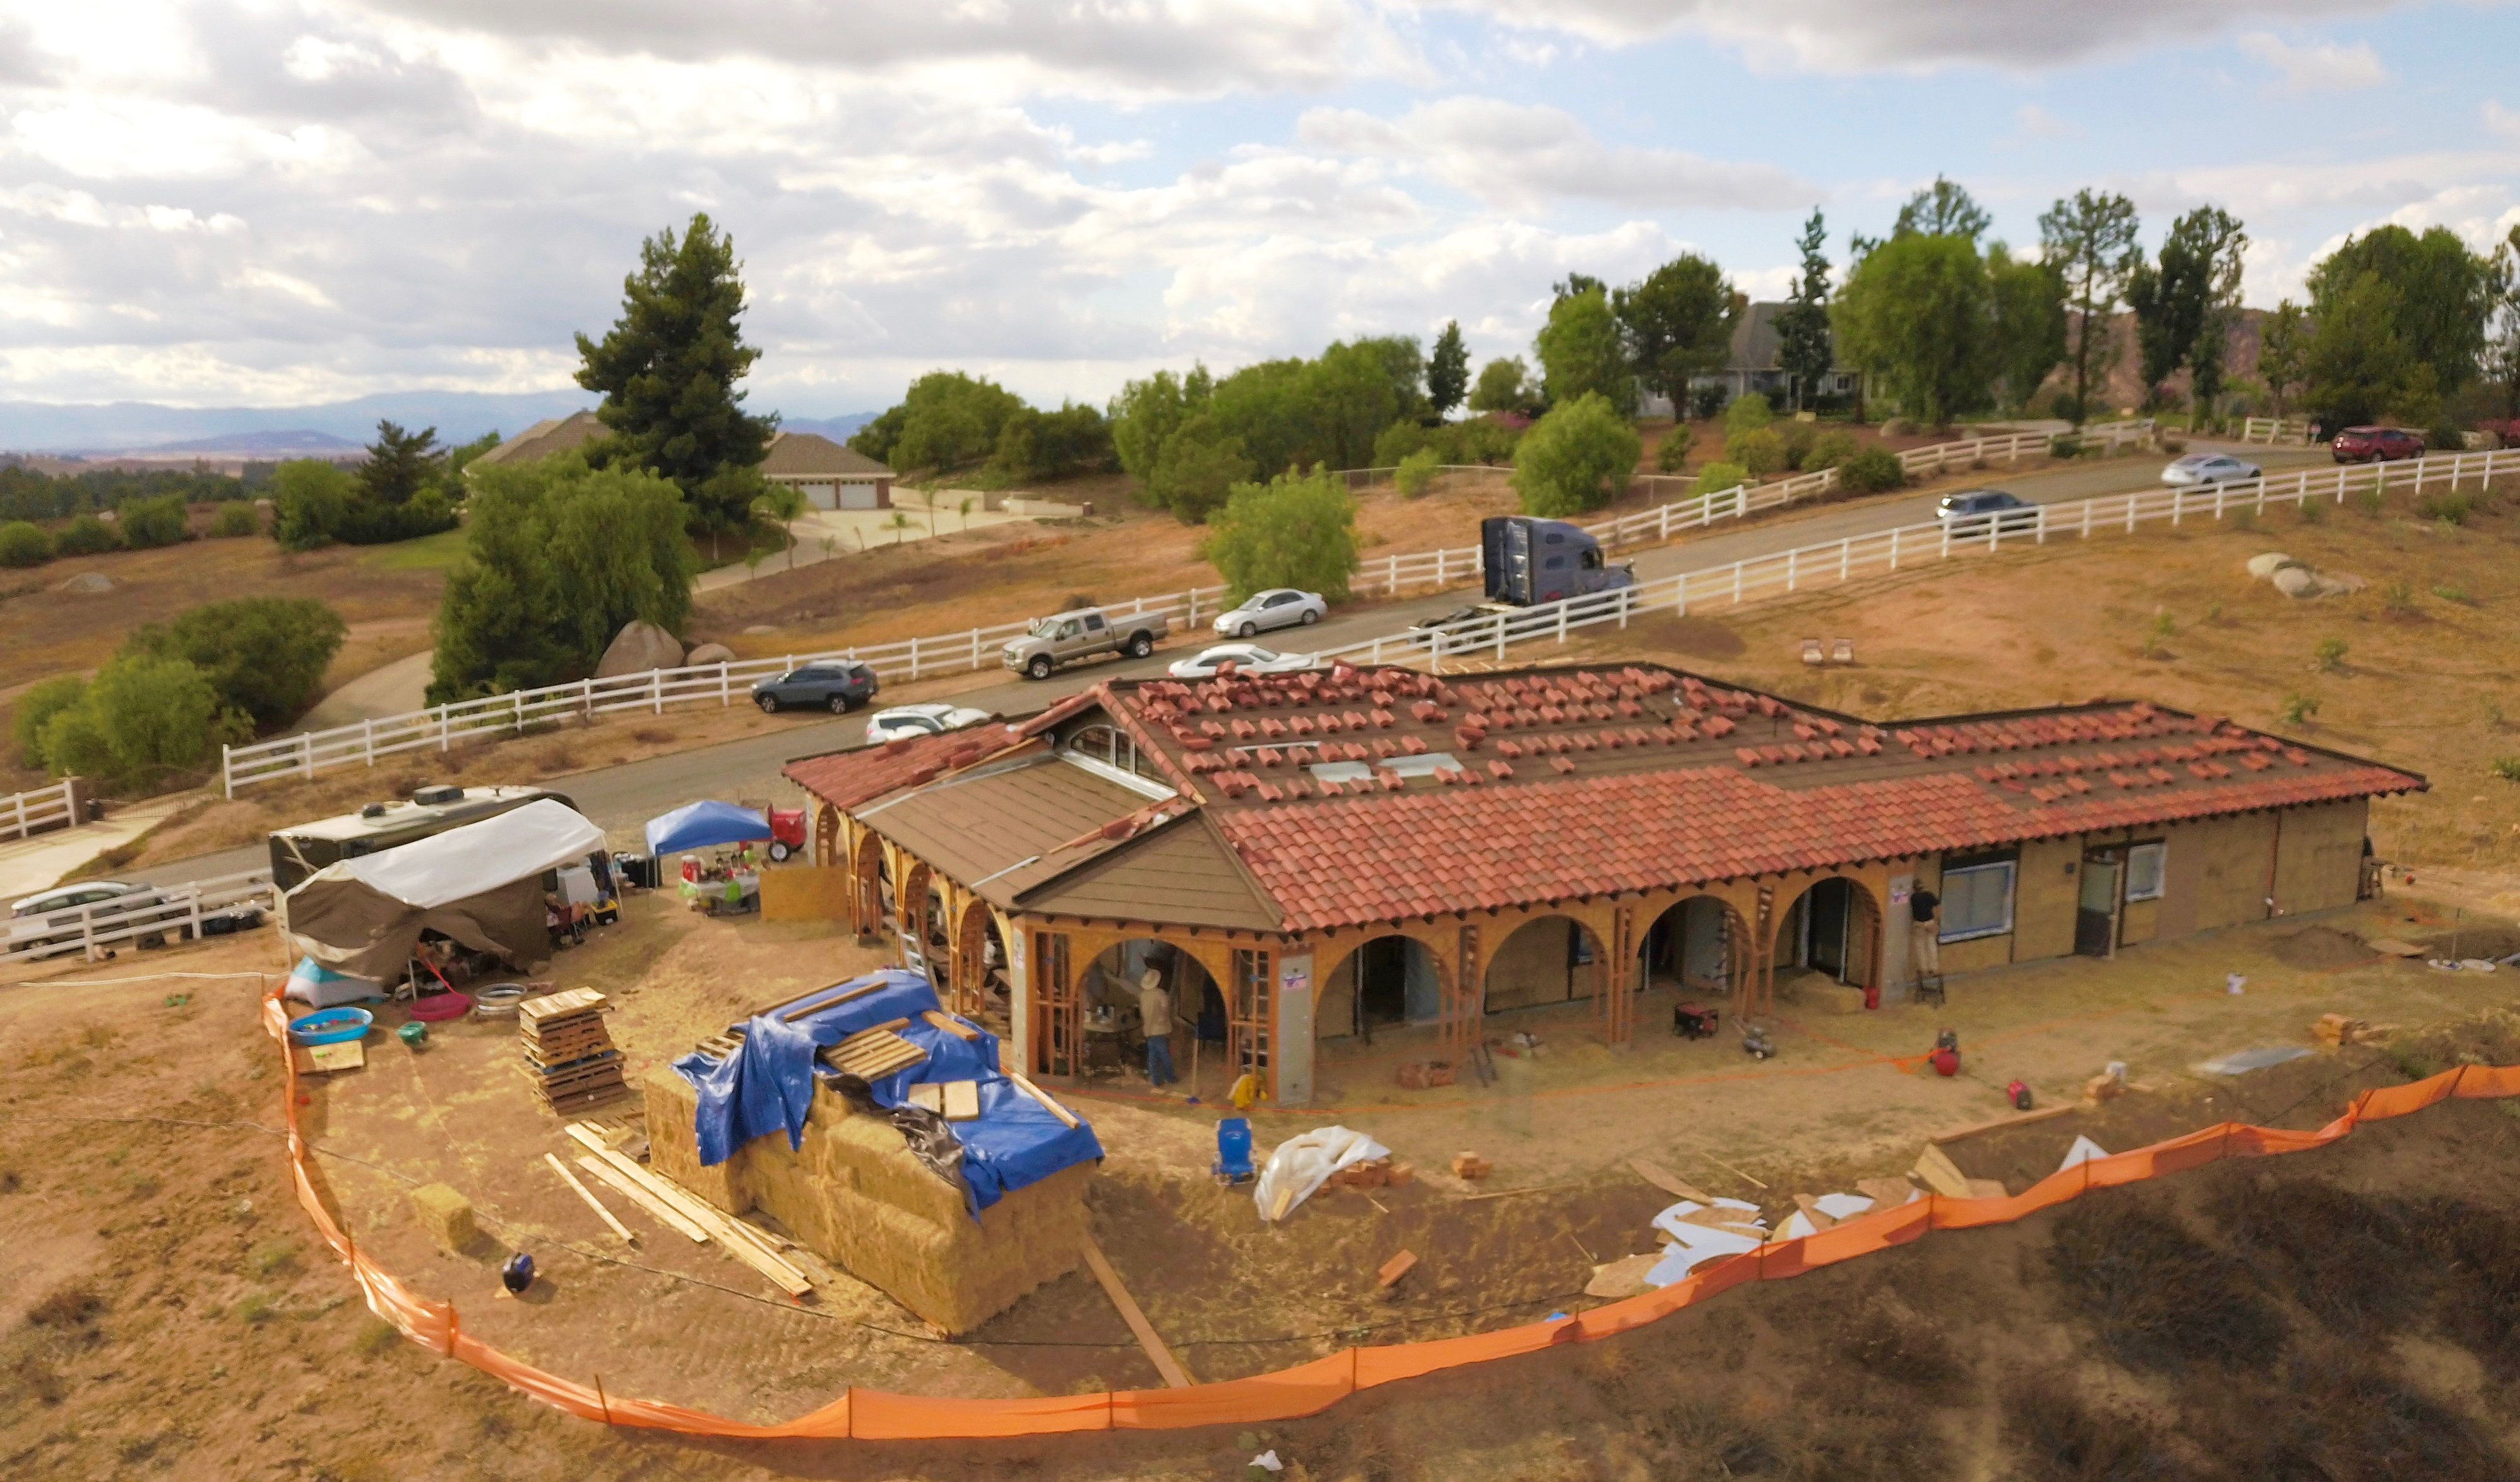 Overhead view of straw bale house